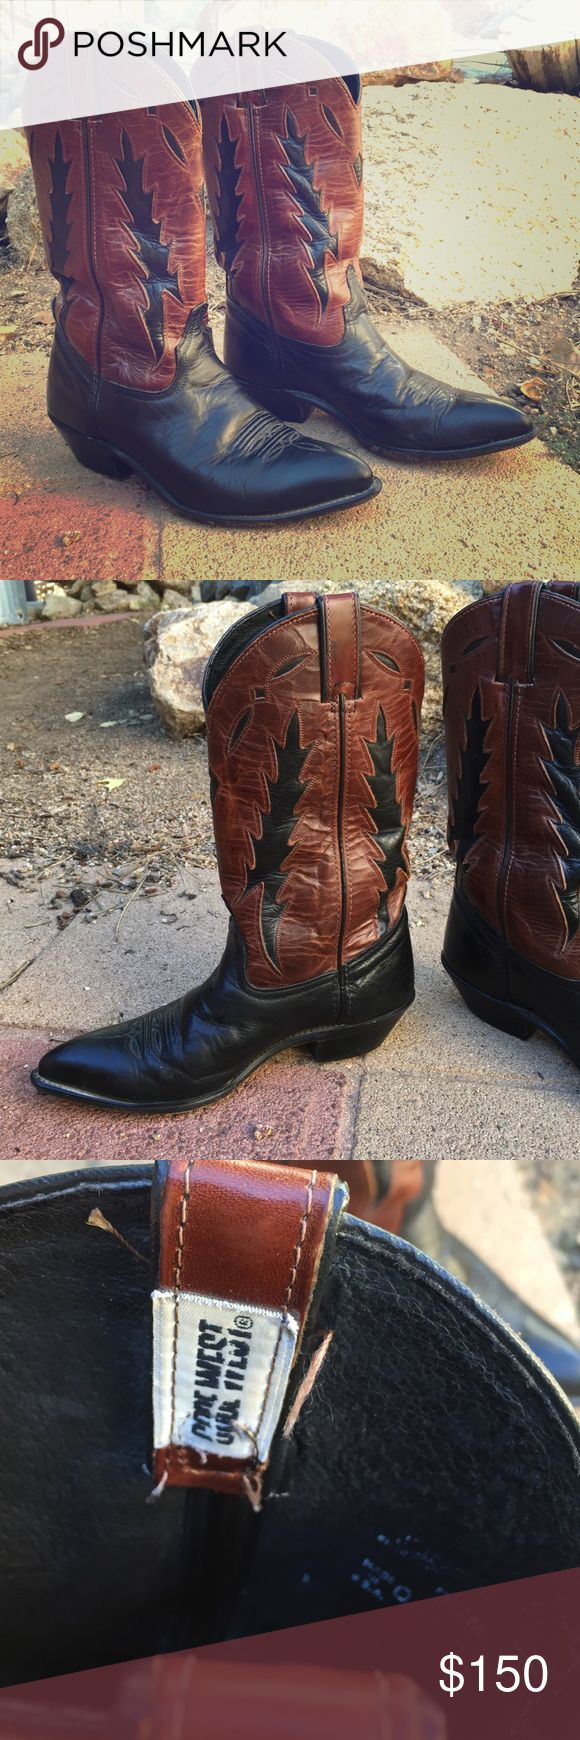 Code West Cowboy Boots Vintage western boots 😍 black leather with brown leather design • size 7.5 women • cowboy boots • Code West #codewestboots #cowboyboots #boots #vintagewesternboots #morningmonologue #sexyboots #ithriftforyou Code West  Shoes